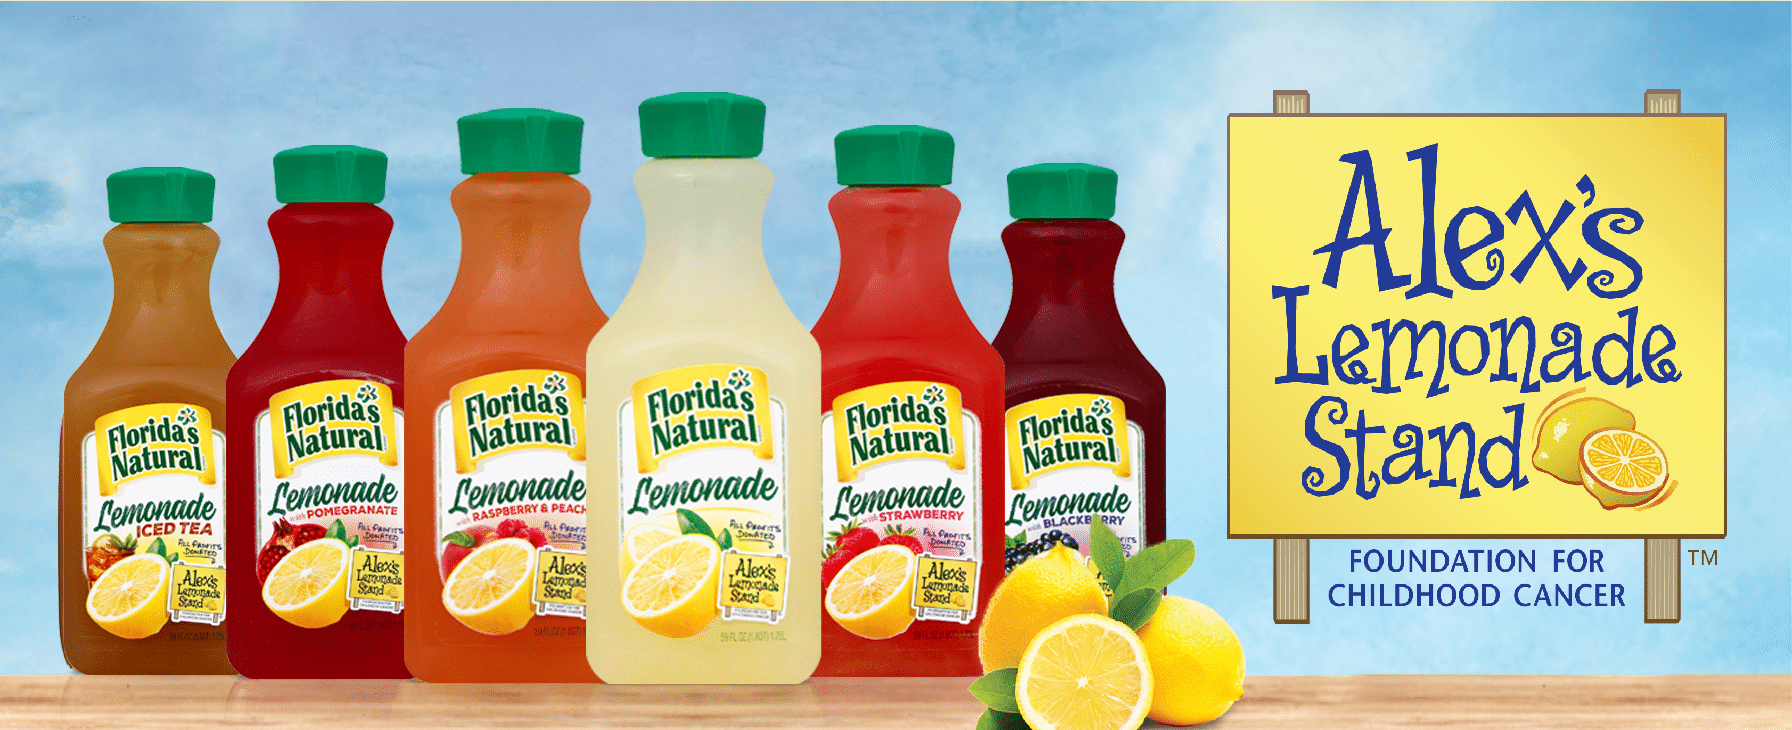 Florida's Natural Alex's Lemonade Stand Flavors. Looking for a fun way to keep the kids entertained this summer? Celebrate the start of summer with Lemonade-Inspired Art In the Backyard.